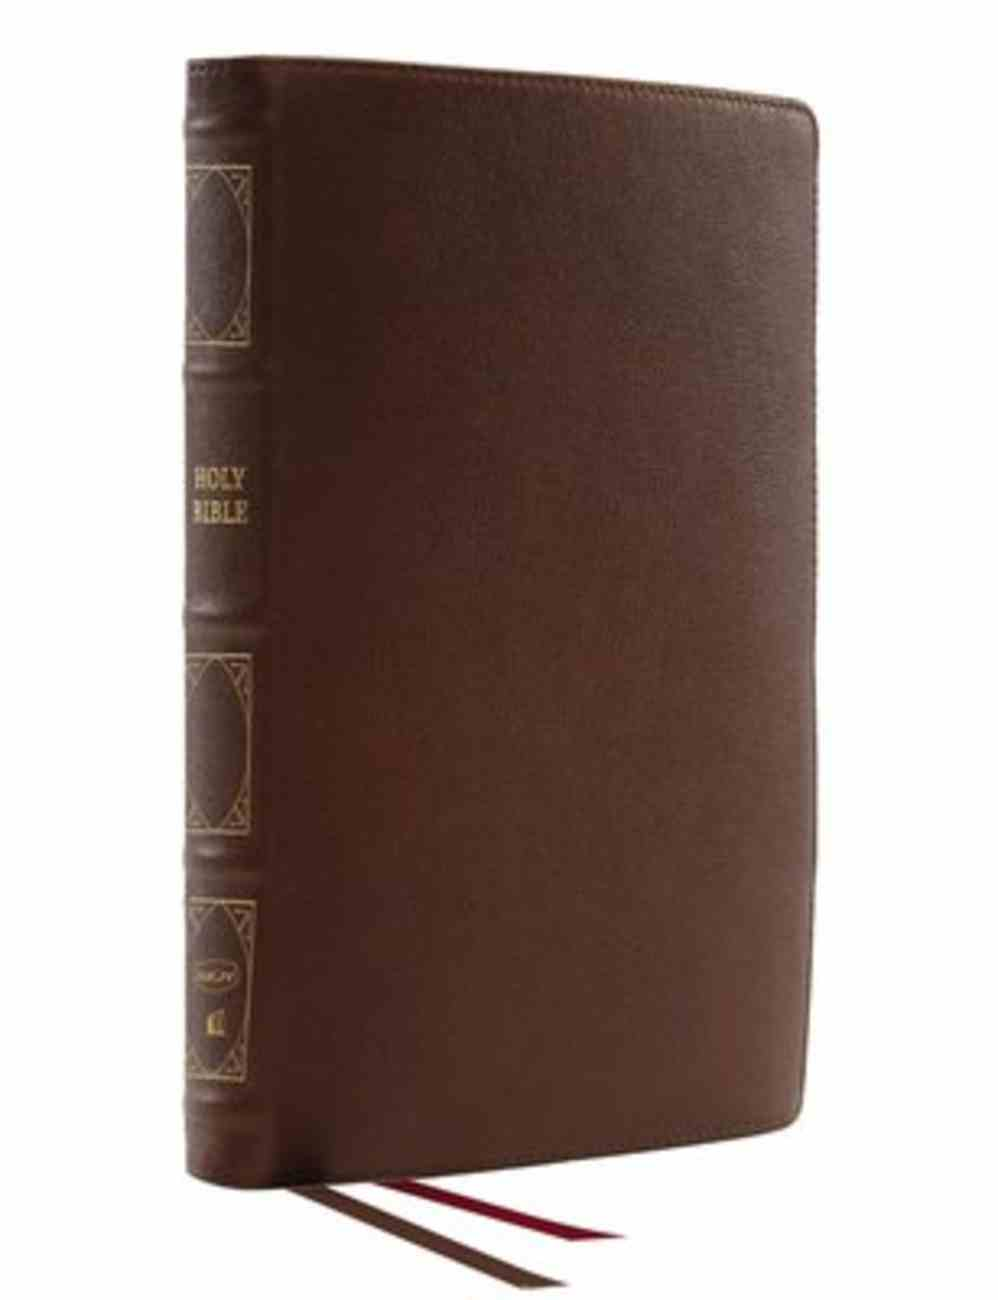 NKJV Thinline Reference Bible Brown (Red Letter Edition) Genuine Leather